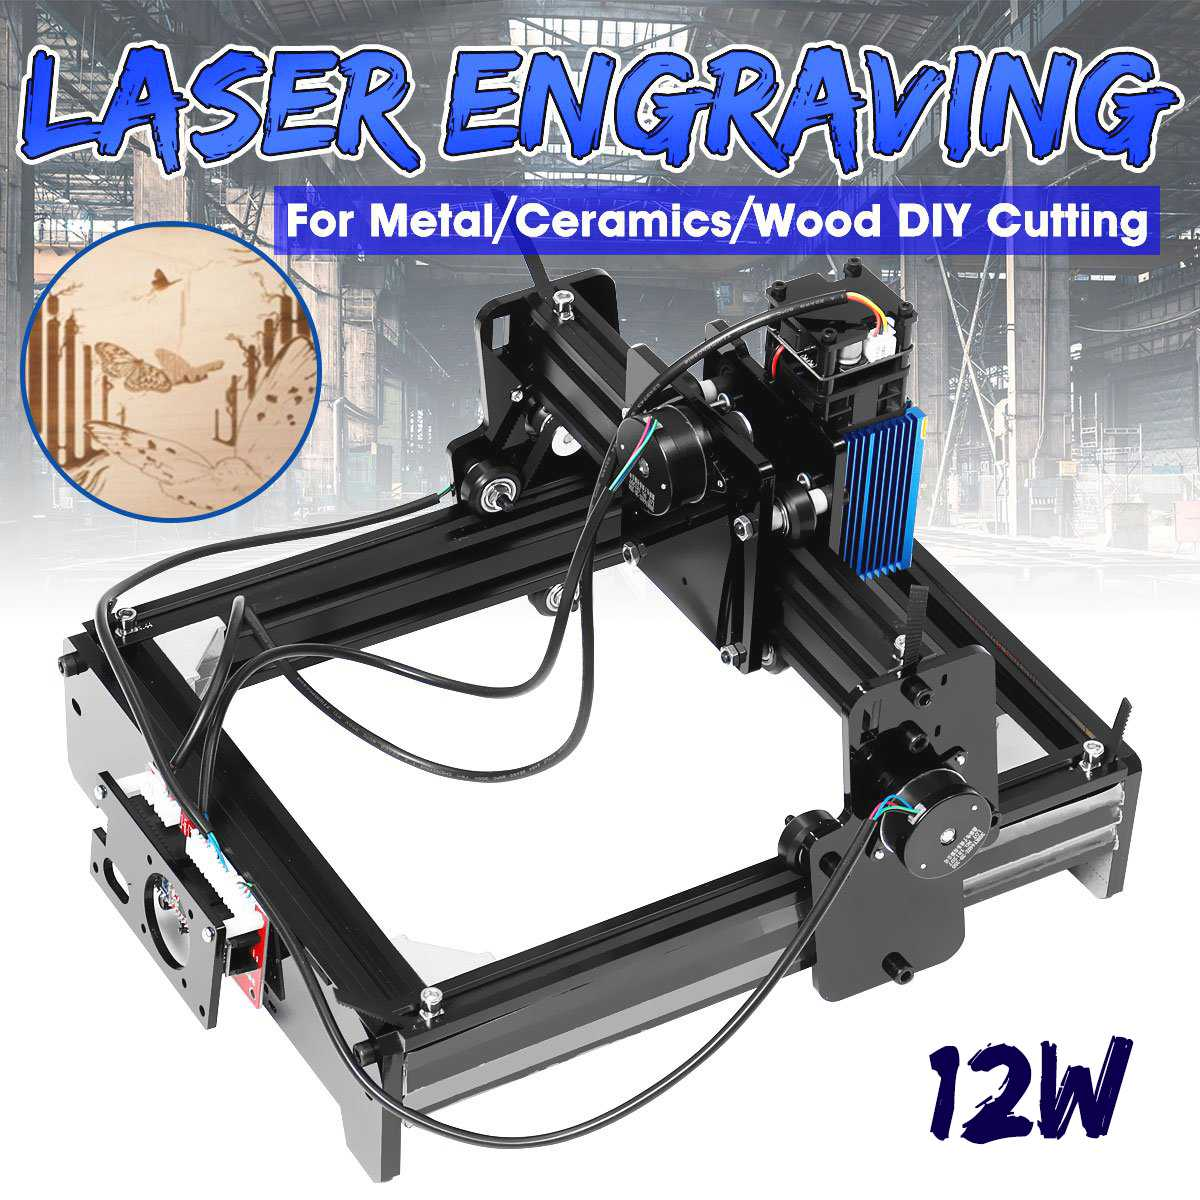 20*14CM 12W Laser Engraving Machine DC 12V Metal Marking Engraver Home DIY Logo Printer Cutter Support Windows 7 8 10 System20*14CM 12W Laser Engraving Machine DC 12V Metal Marking Engraver Home DIY Logo Printer Cutter Support Windows 7 8 10 System